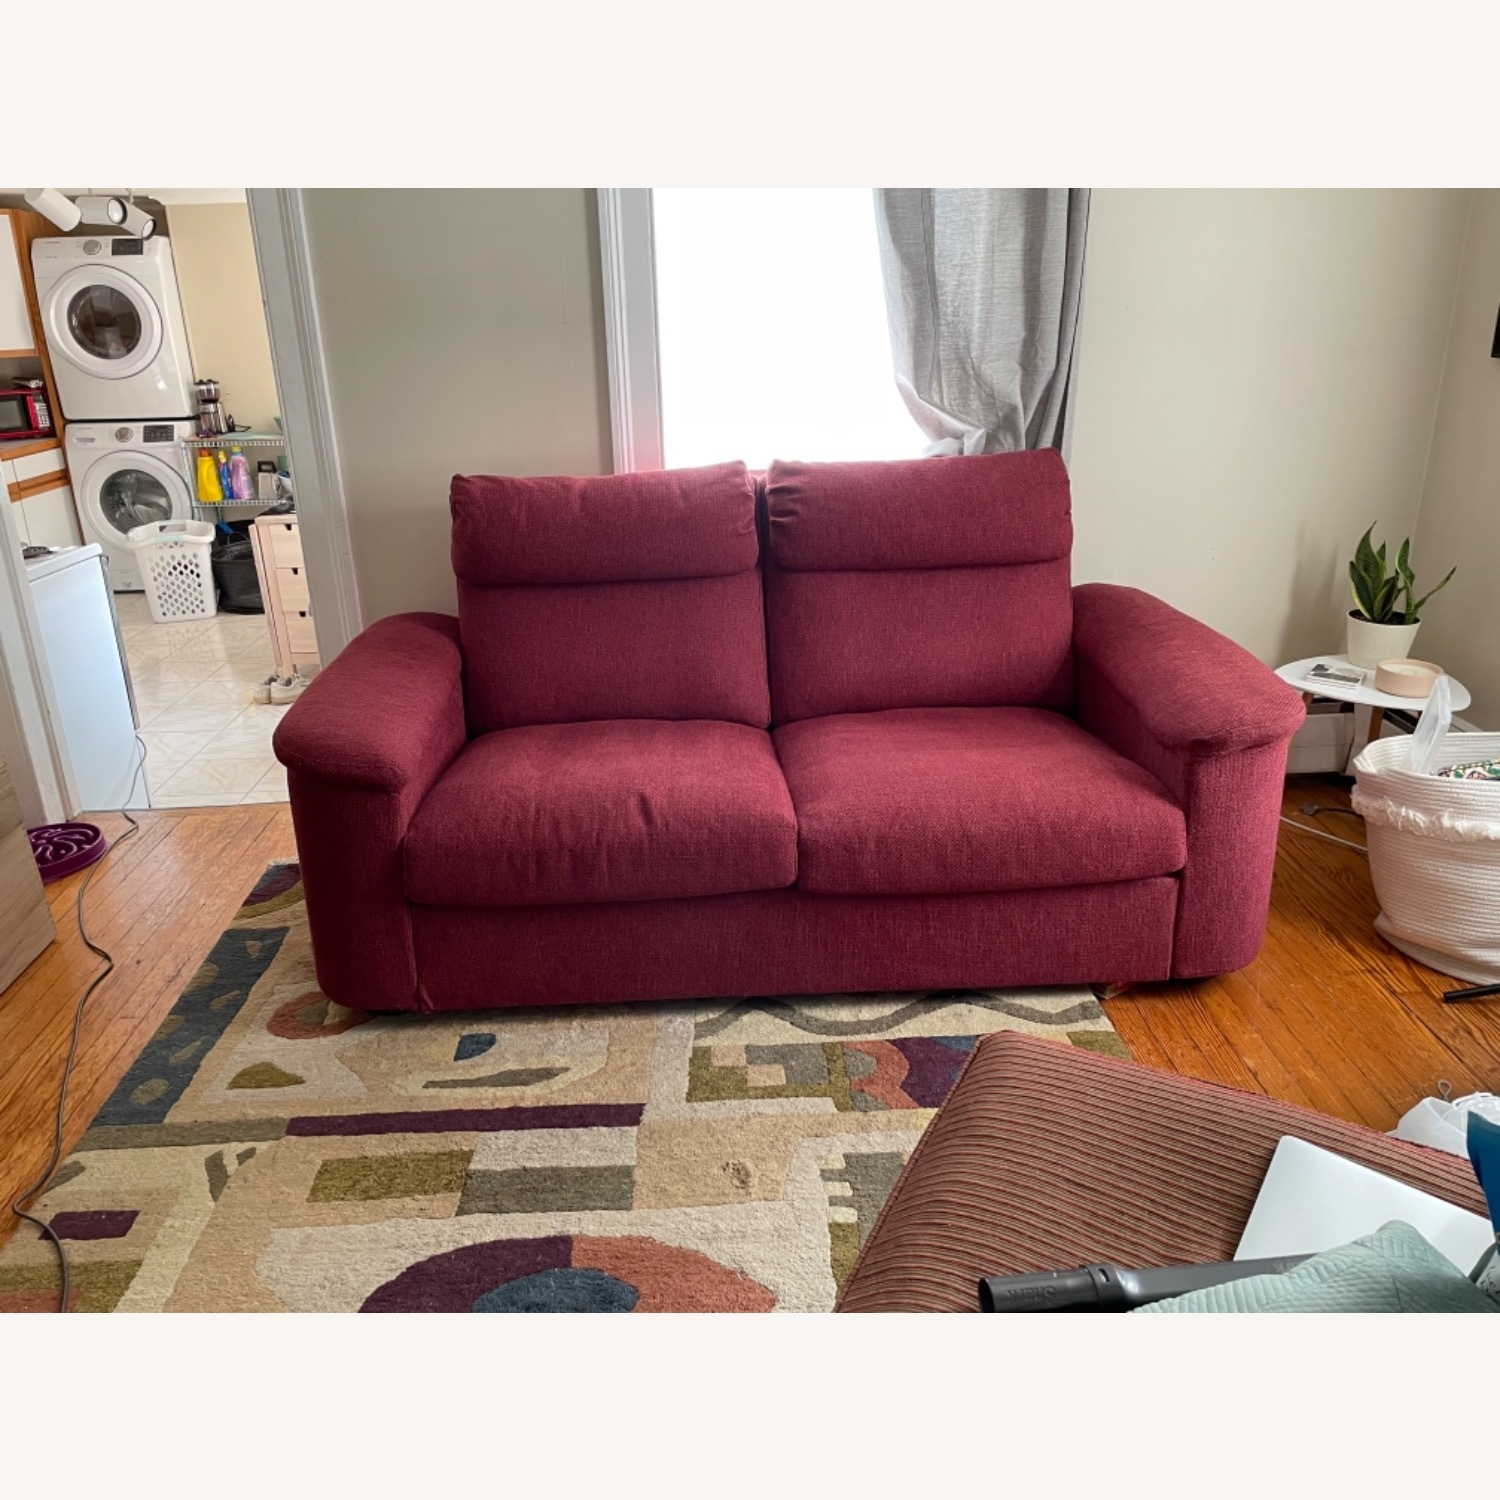 IKEA Super Comfy Couch - image-1